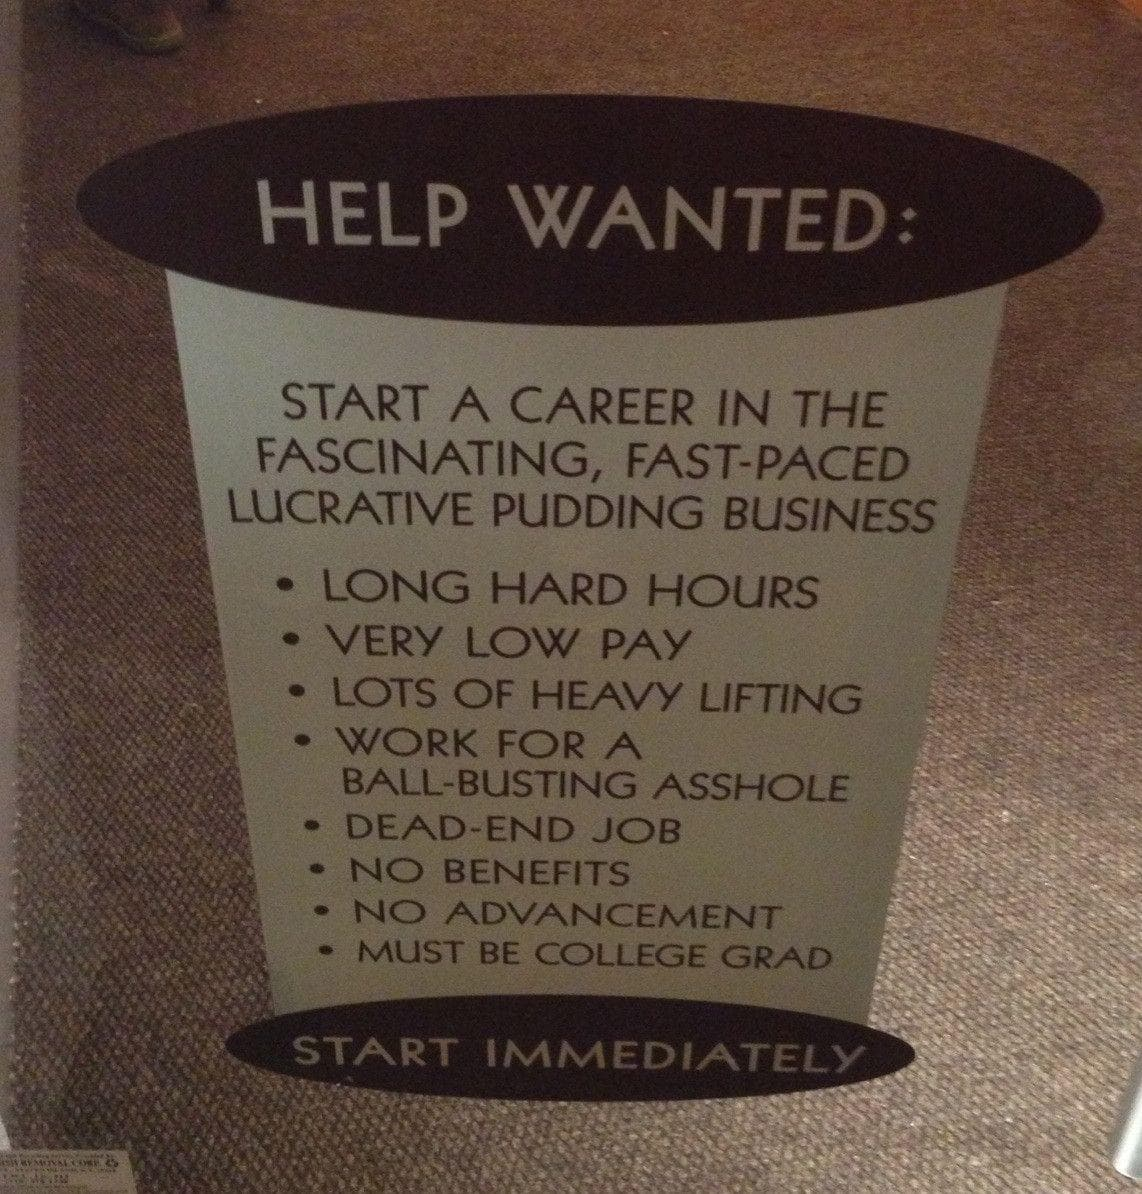 Random Hilarious Job Descriptions That Will Make You Happy You Don't Work There